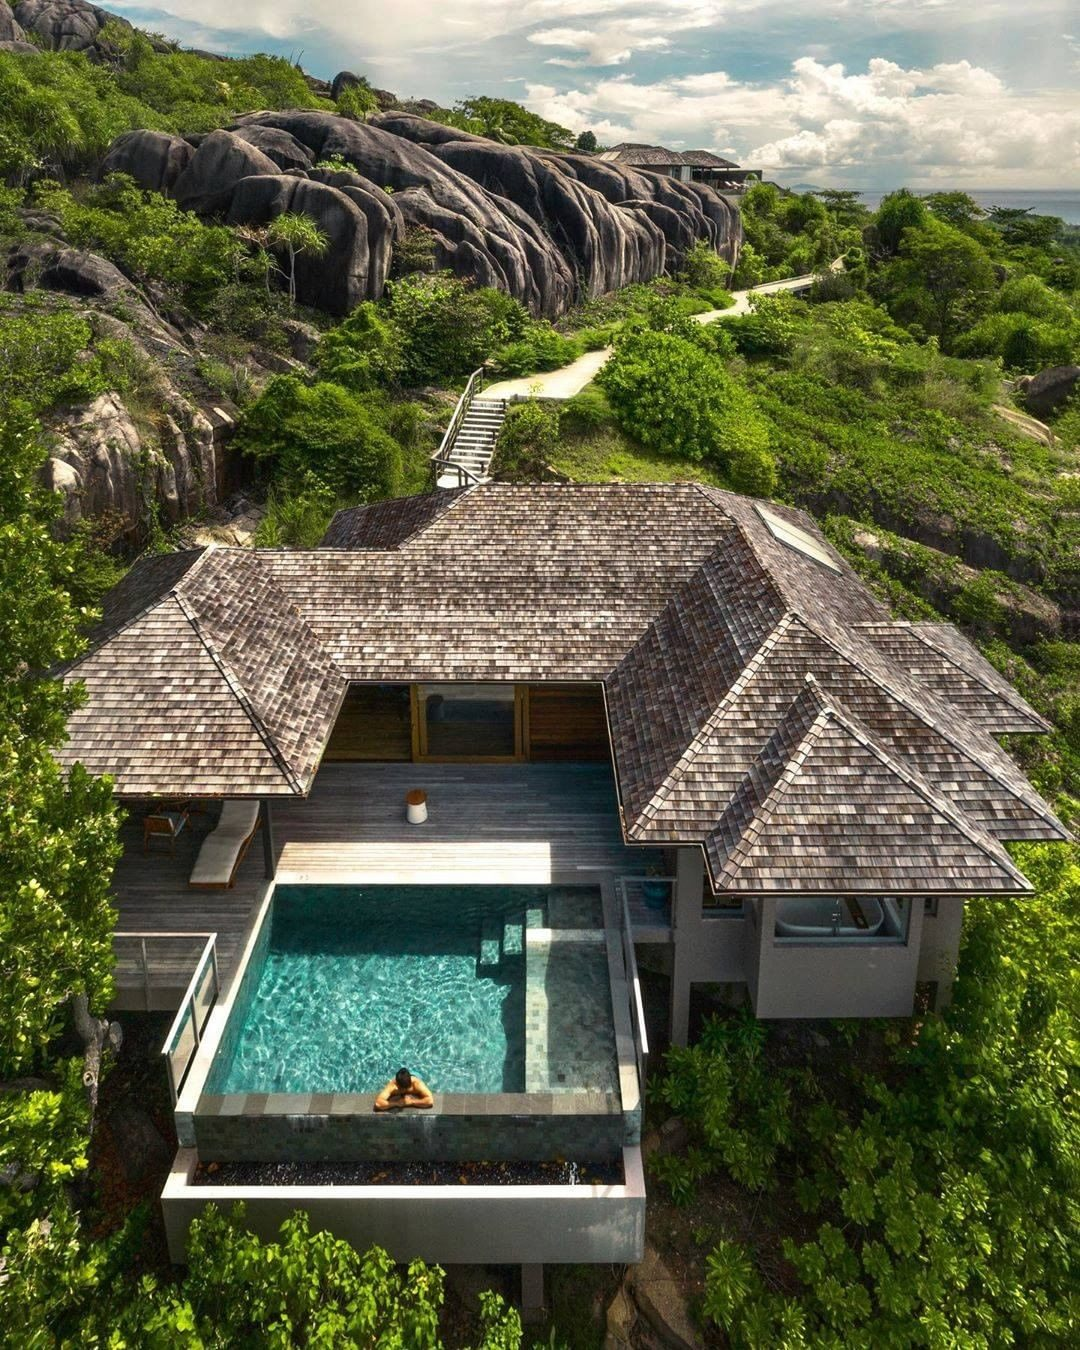 A Baecation In This Bnhoneymoonspot In Seychelles Is A